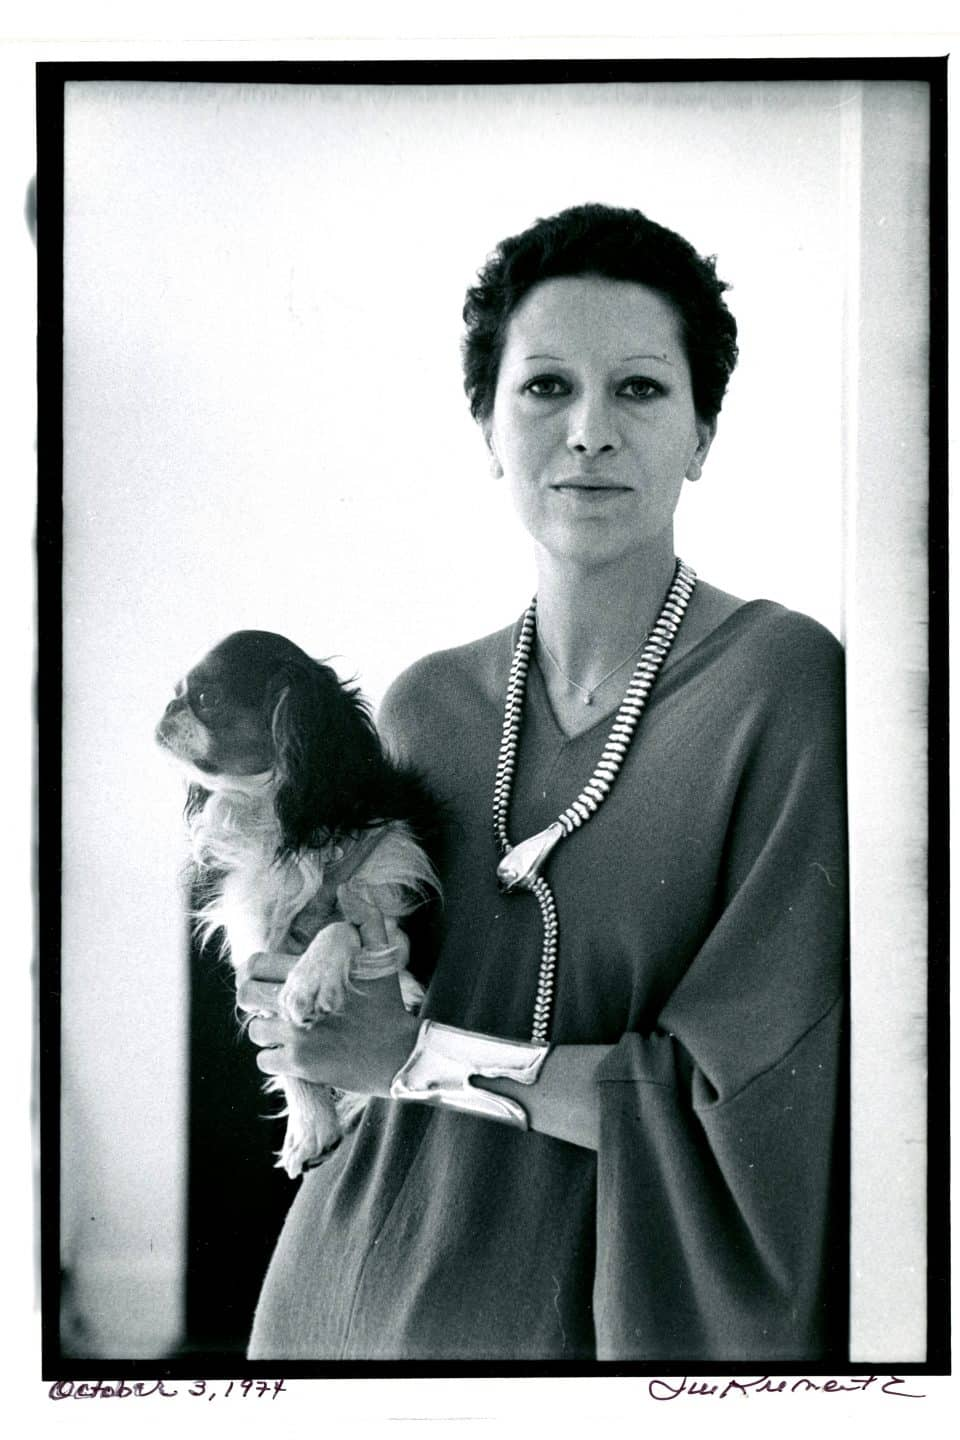 Reflections on Elsa Peretti, the Visionary Who Changed the Way We Wear Jewelry